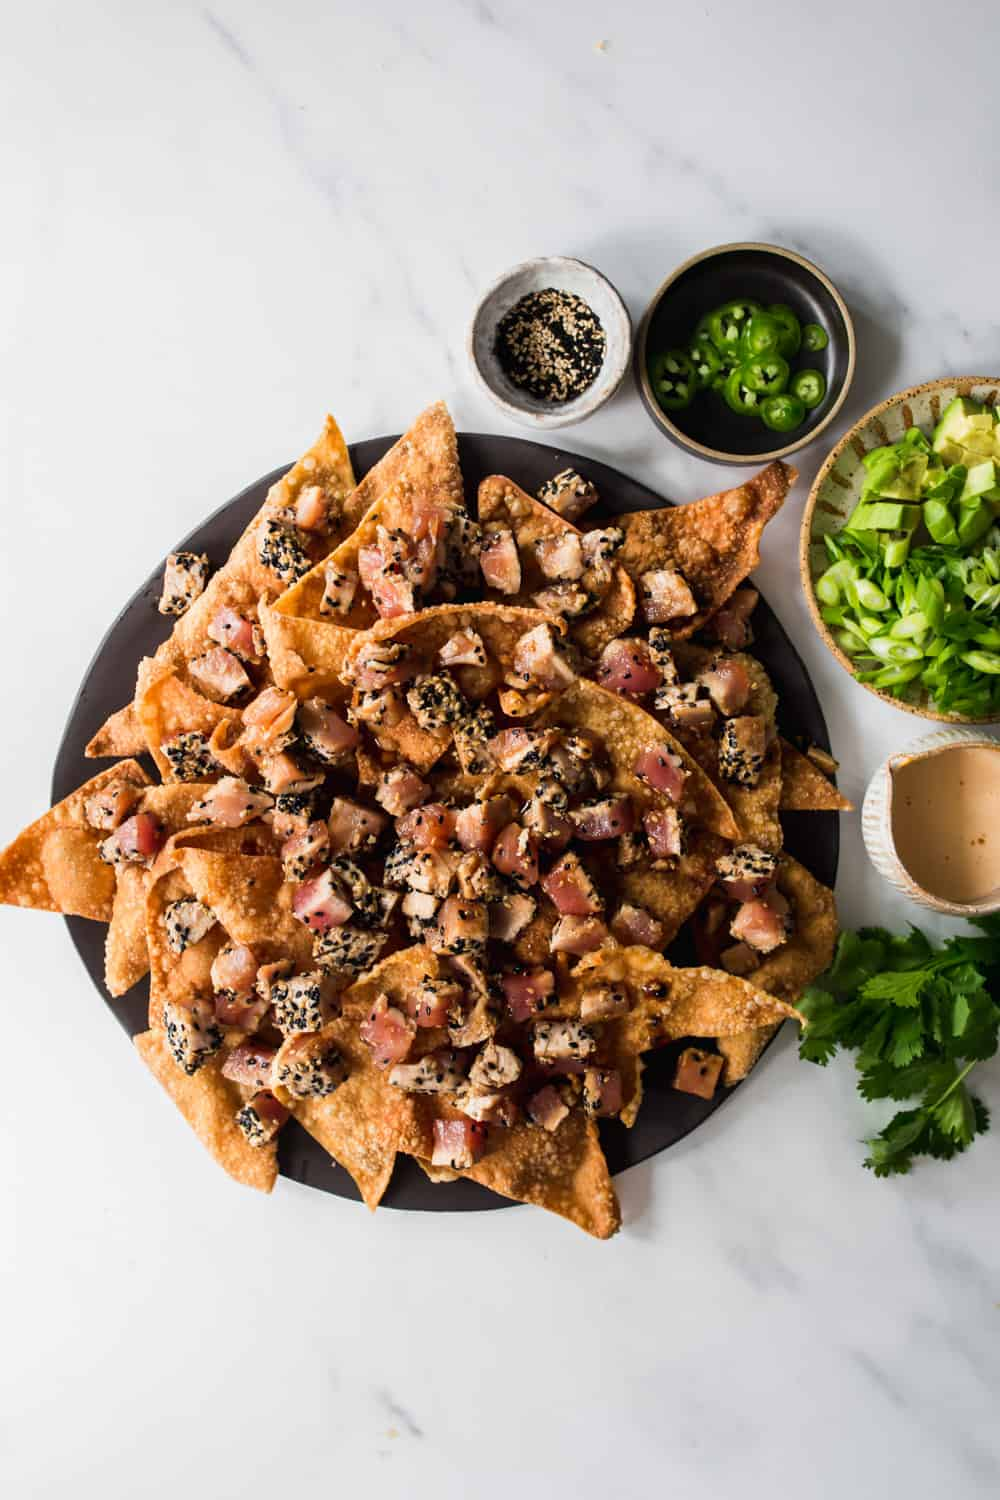 Nachos on a plate with cubes of tuna. Sesame seeds, jalapeños, green onions, and spicy mayo on the side.